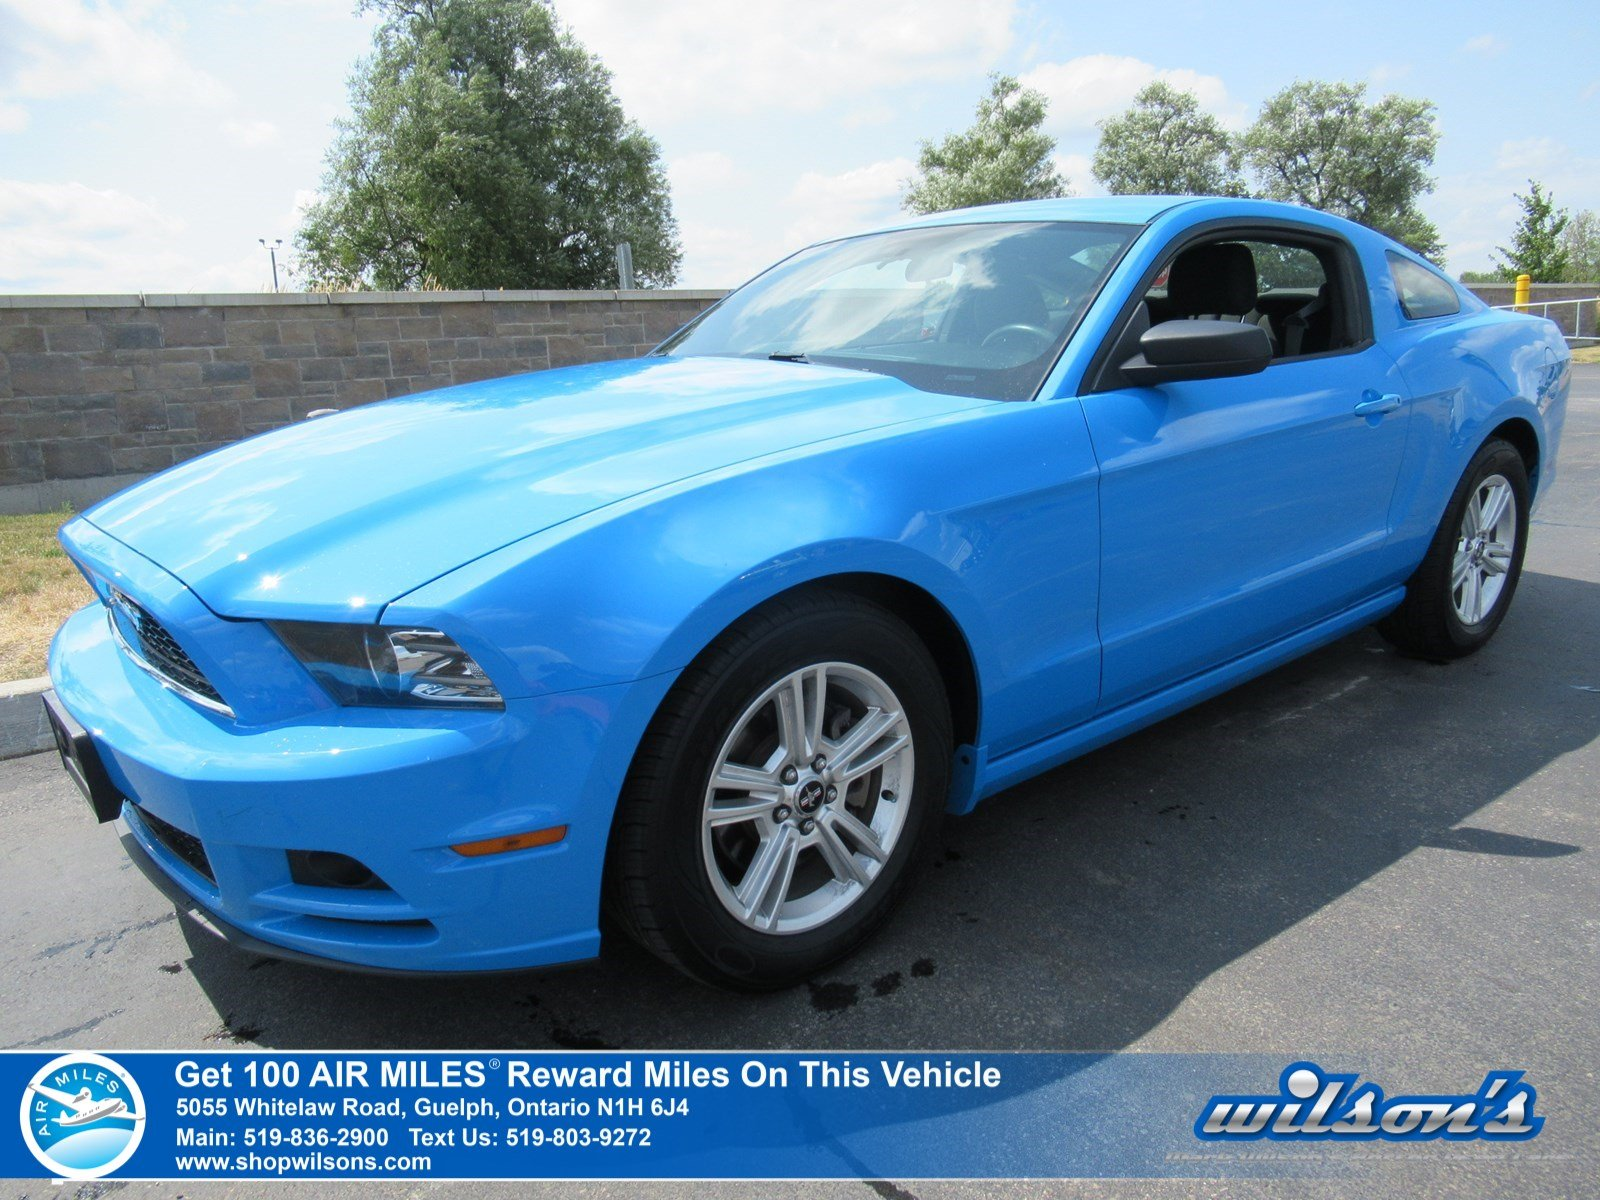 Certified Pre-Owned 2014 Ford Mustang V6 Coupe - Grabber Blue! Only 30,000km! Manual, Power Package, Alloys, and Much More!